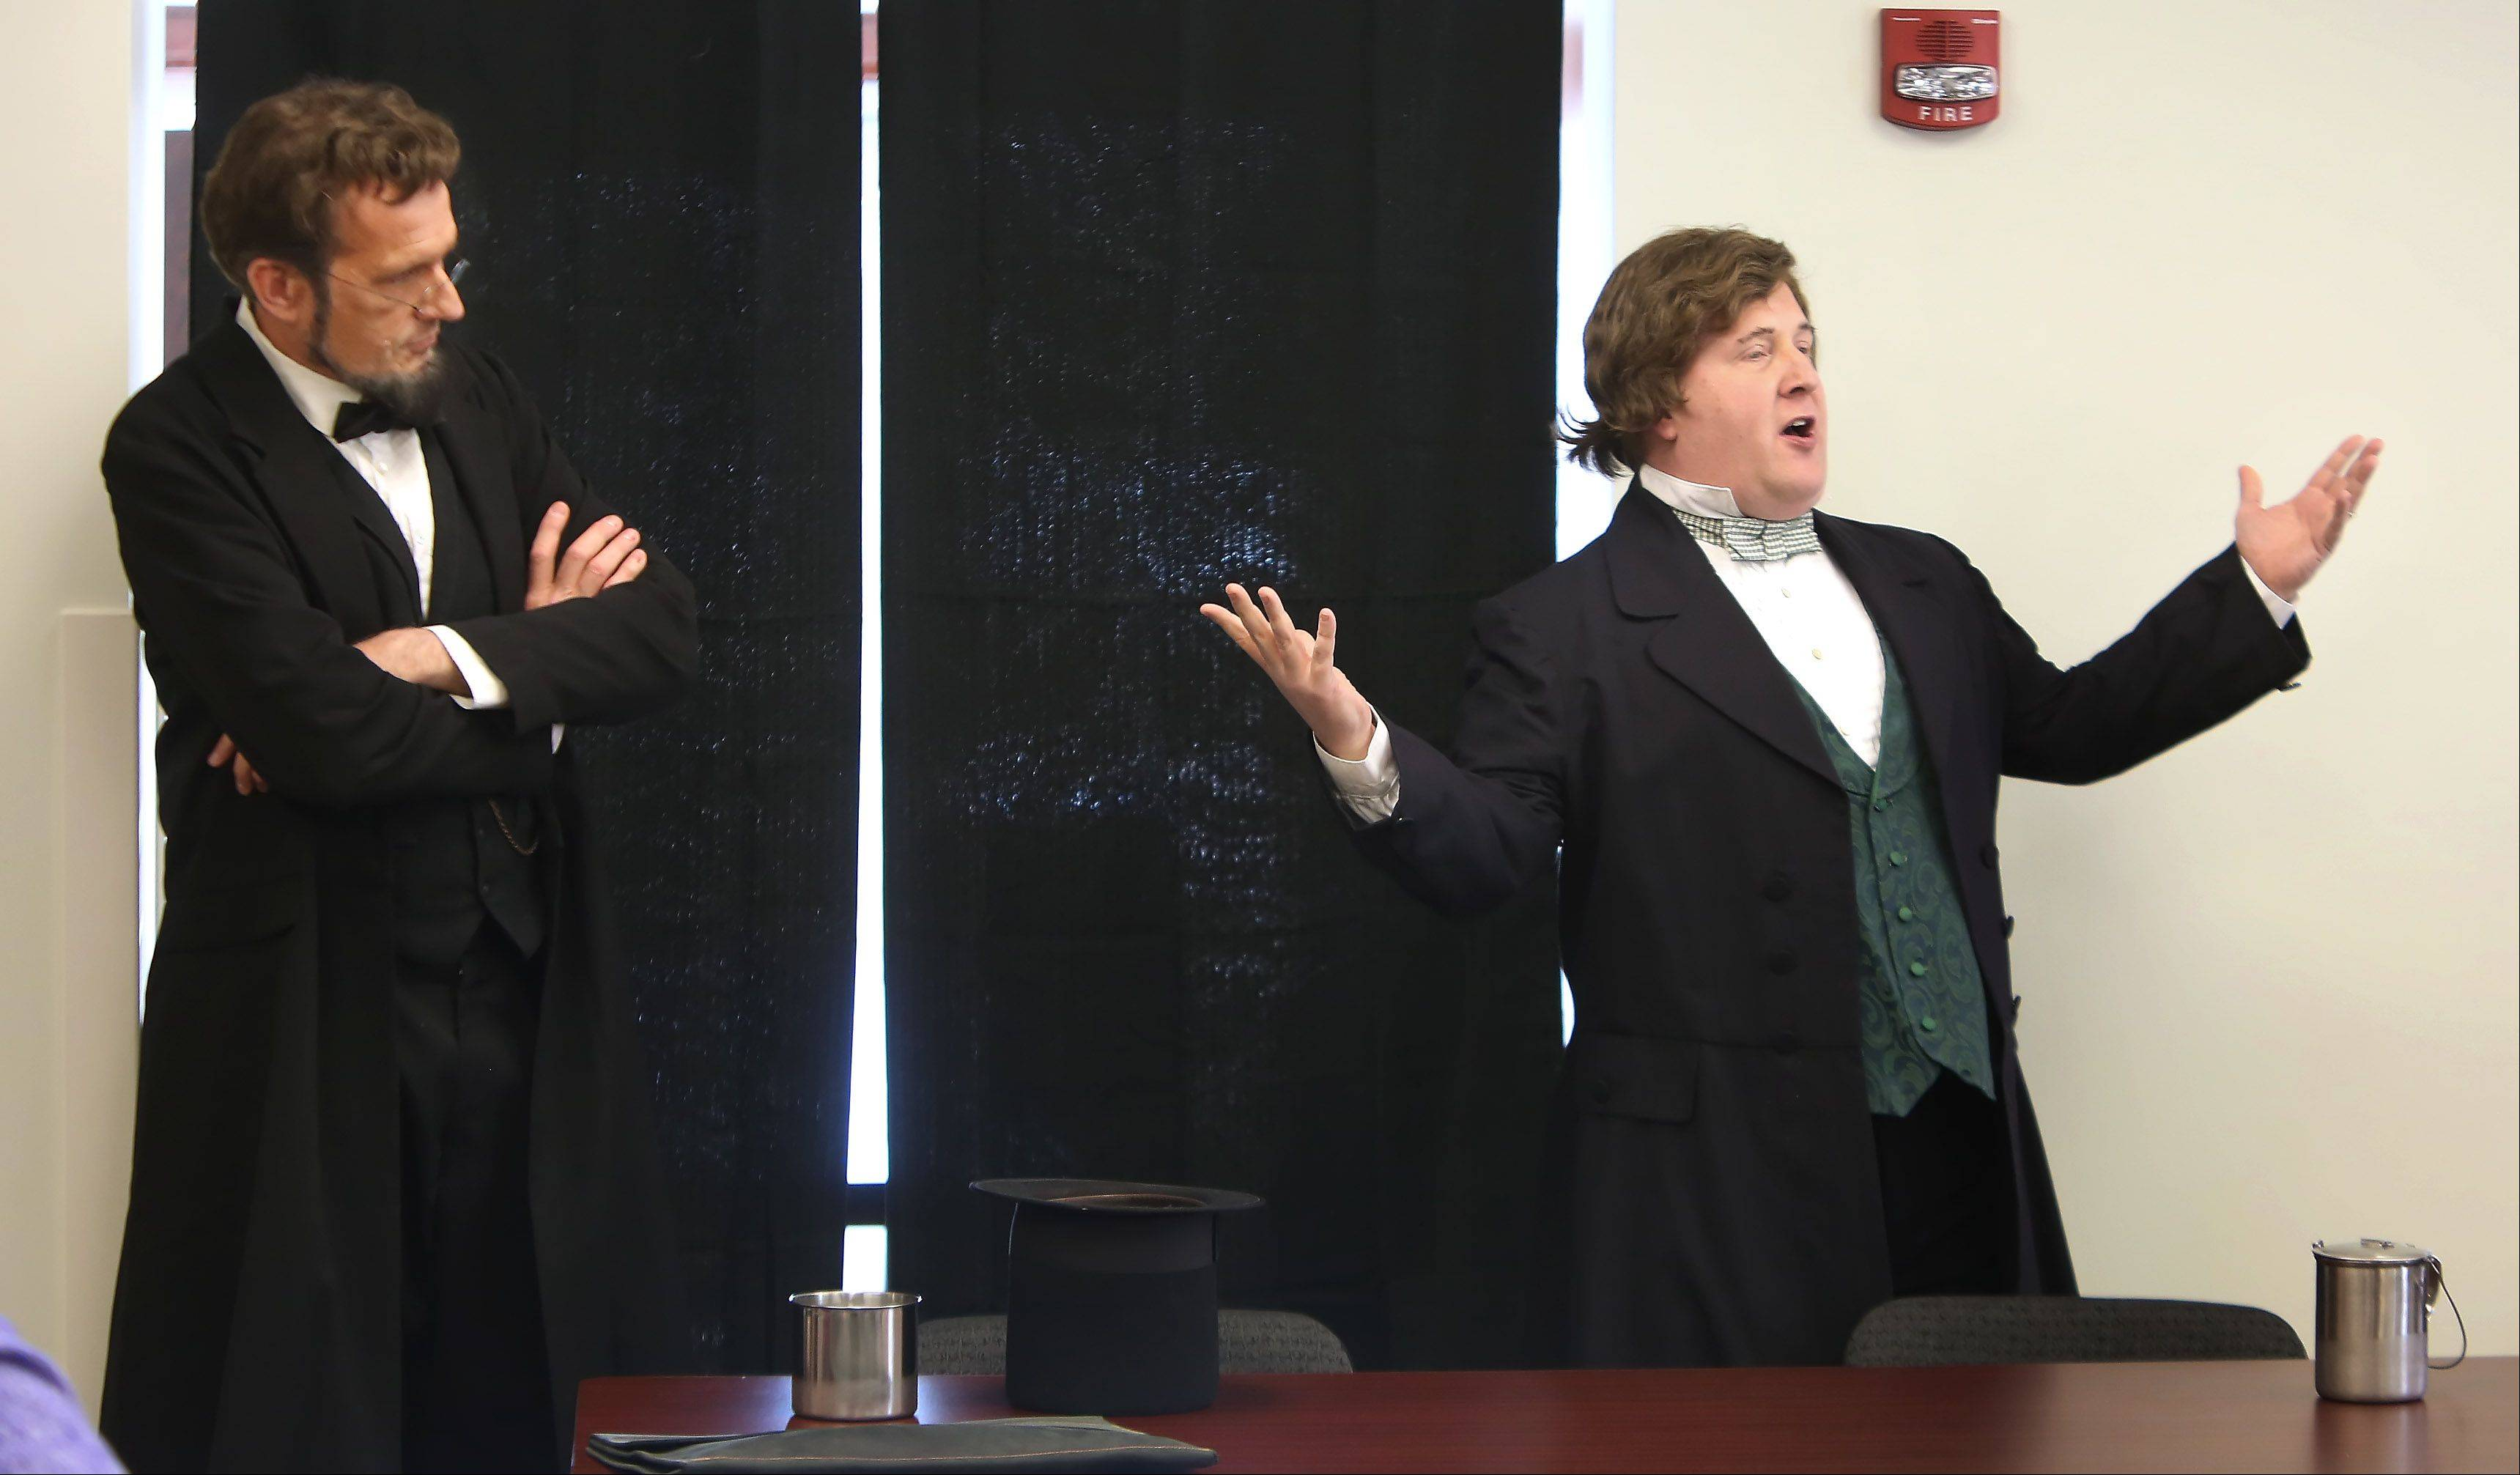 Abraham Lincoln, played by George Buss, watches as Stephen A. Douglas, played by Timothy Connors, discusses his part in the debates they held during their run for the U.S. Senate Sunday at the Grayslake Heritage Center. It�s part of an exhibit called �Abraham Lincoln: Self Made in America.�